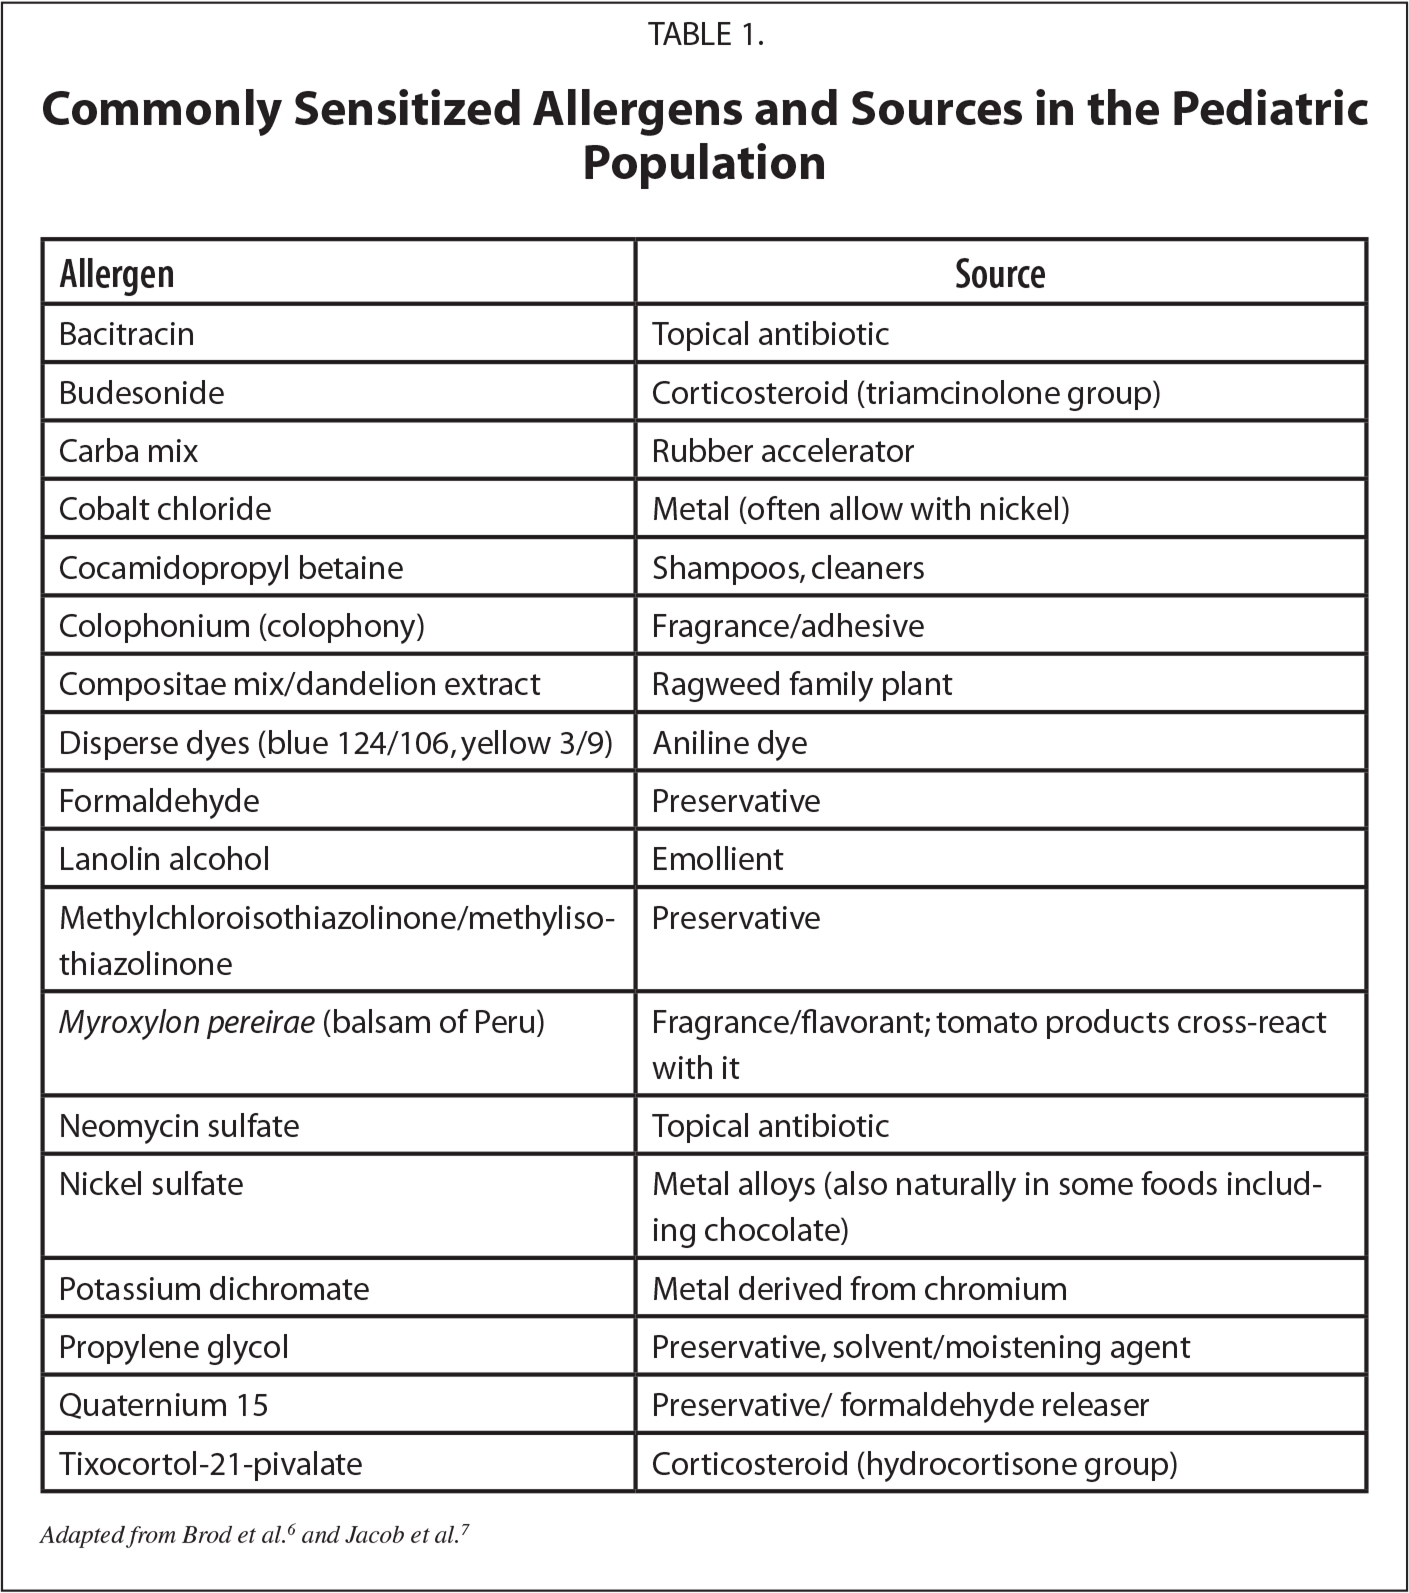 Commonly Sensitized Allergens and Sources in the Pediatric Population